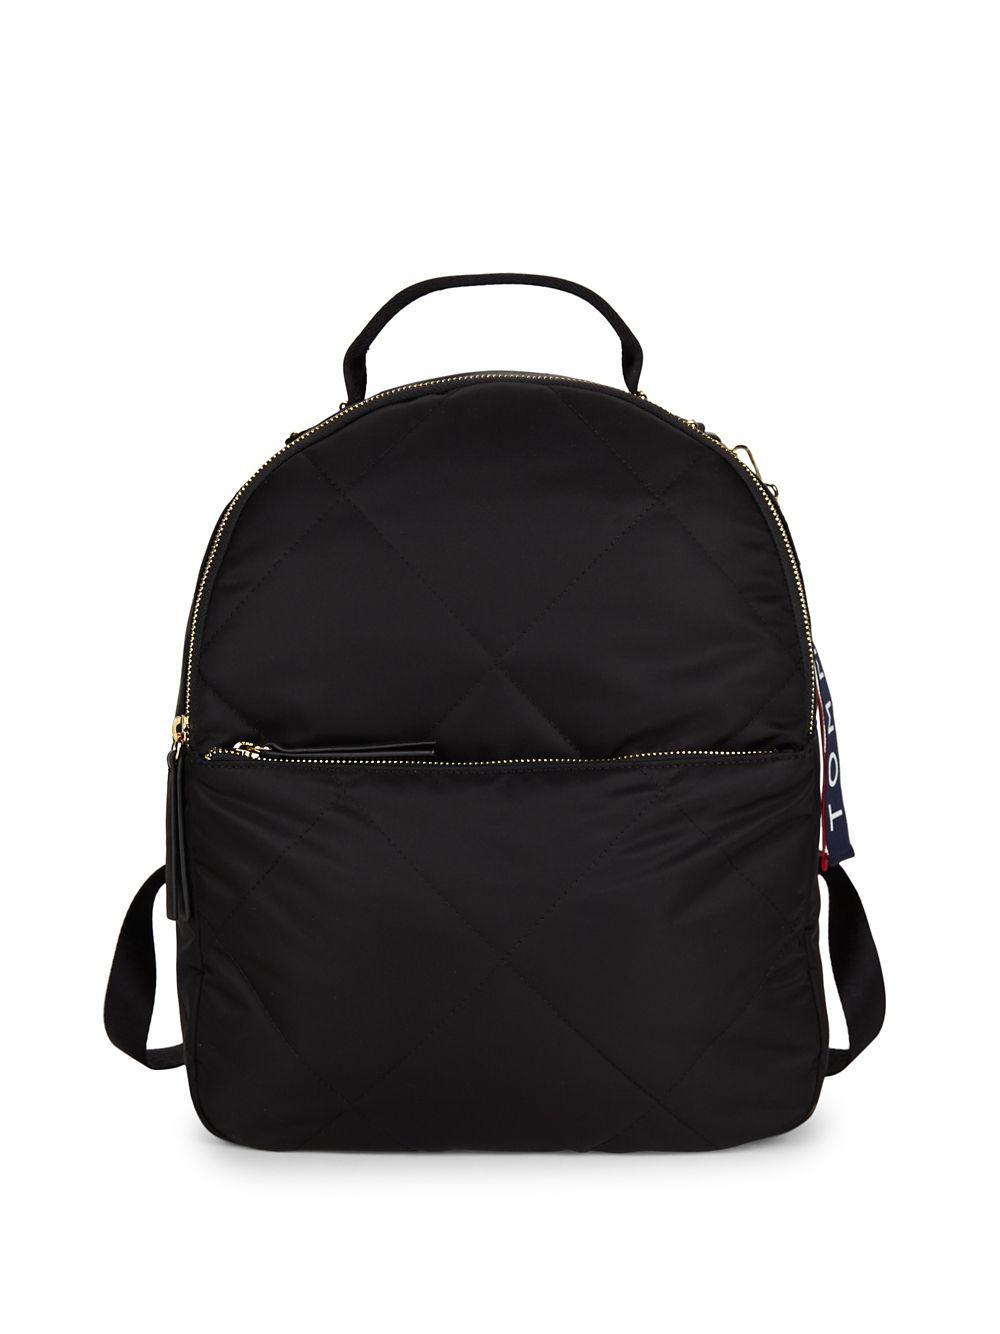 b5d22dad51 Lyst - Tommy Hilfiger Nylon Backpack in Black